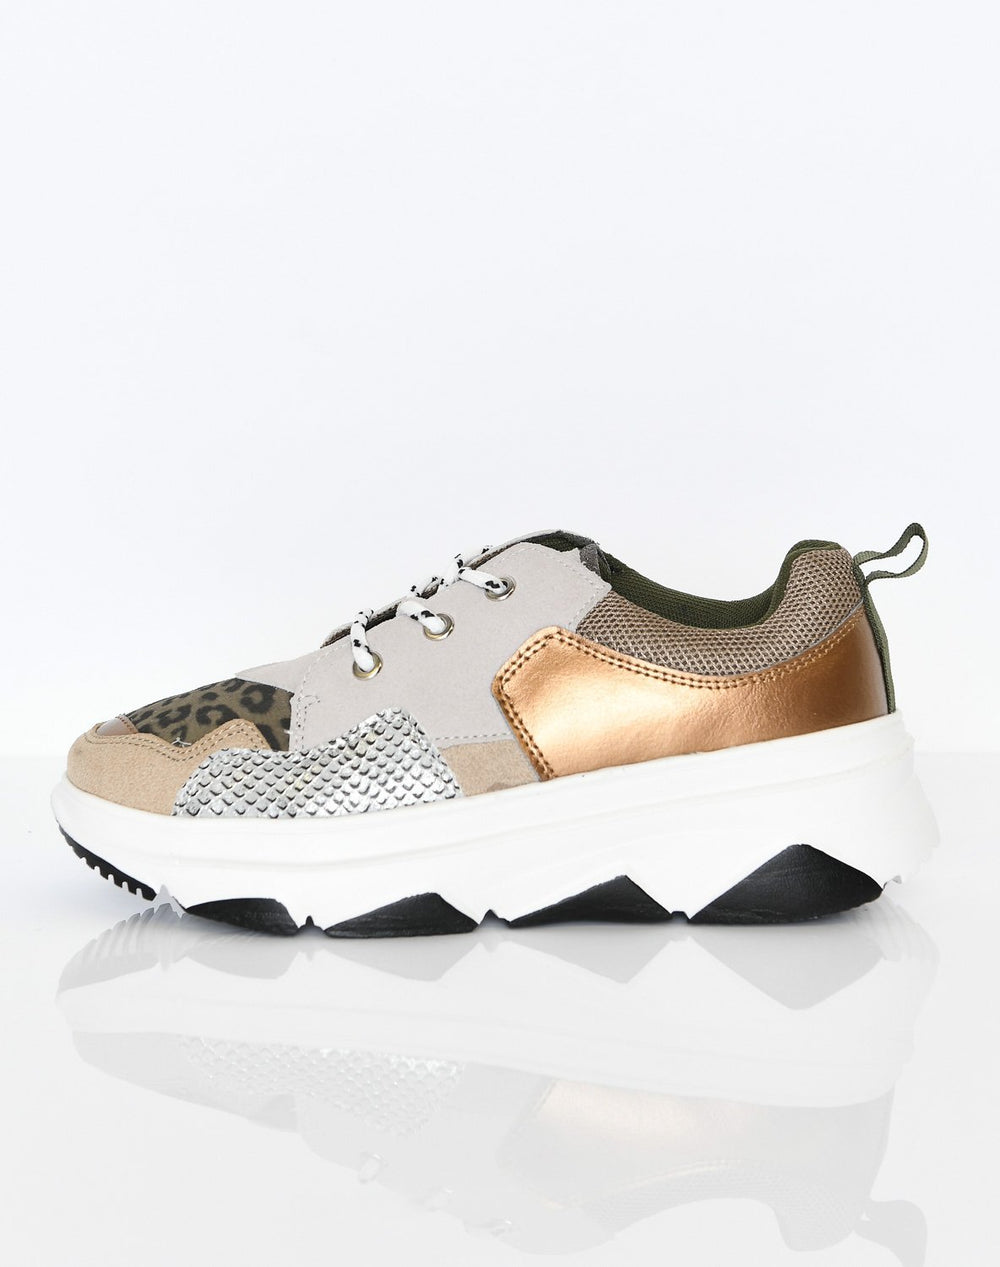 Ichi IAnikinda FW sneakers oxford tan - Online-Mode